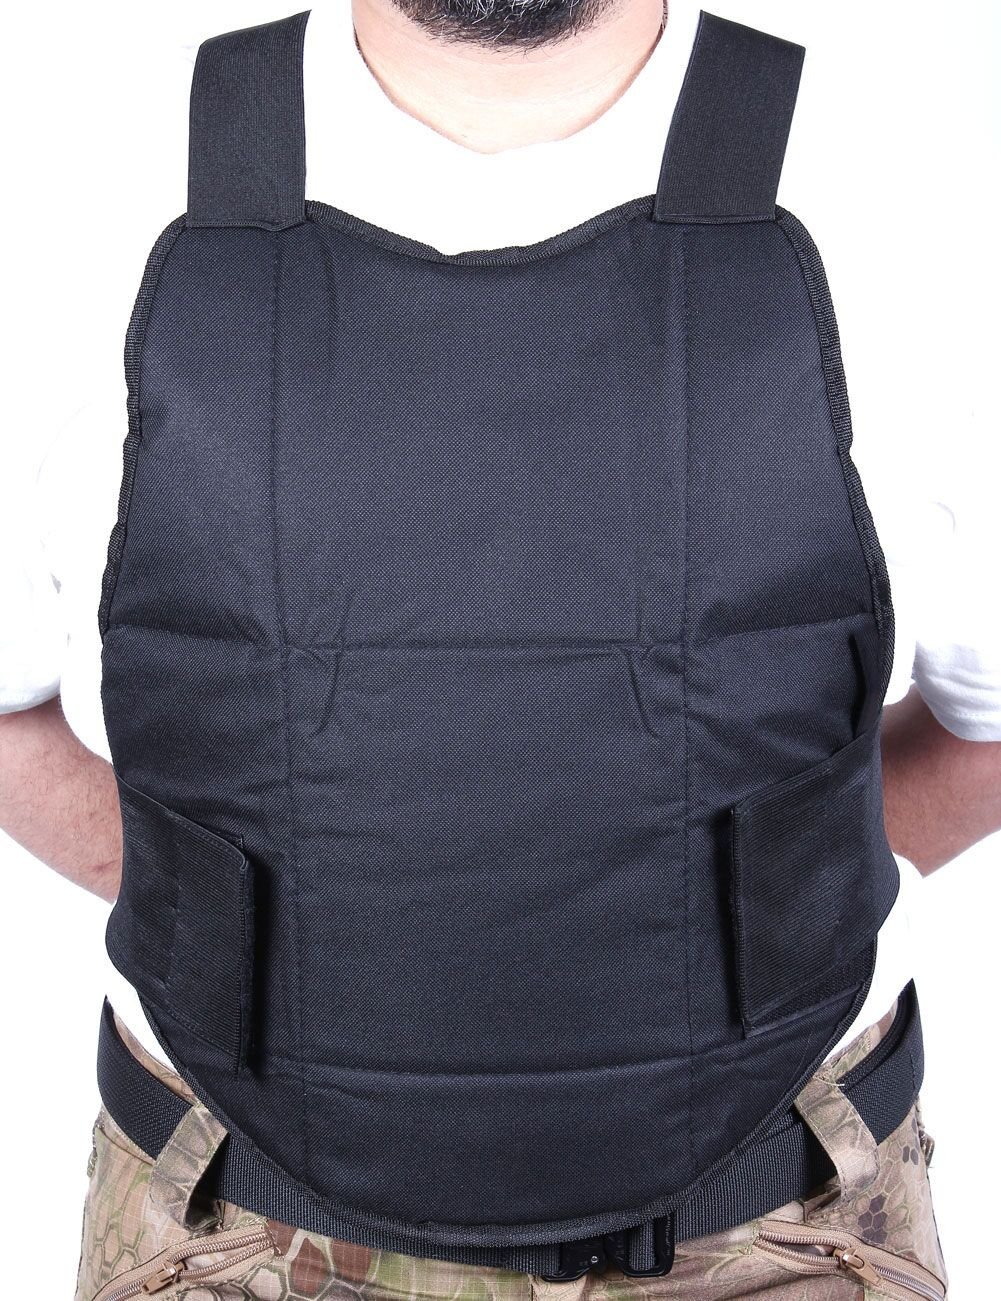 VIVOI Chest Protector - Padded Chest Protection for Paintball & Airsoft - Tactical Vest Body Armor Perfect for Outdoor Sports with Extra Padding for Professional Protection